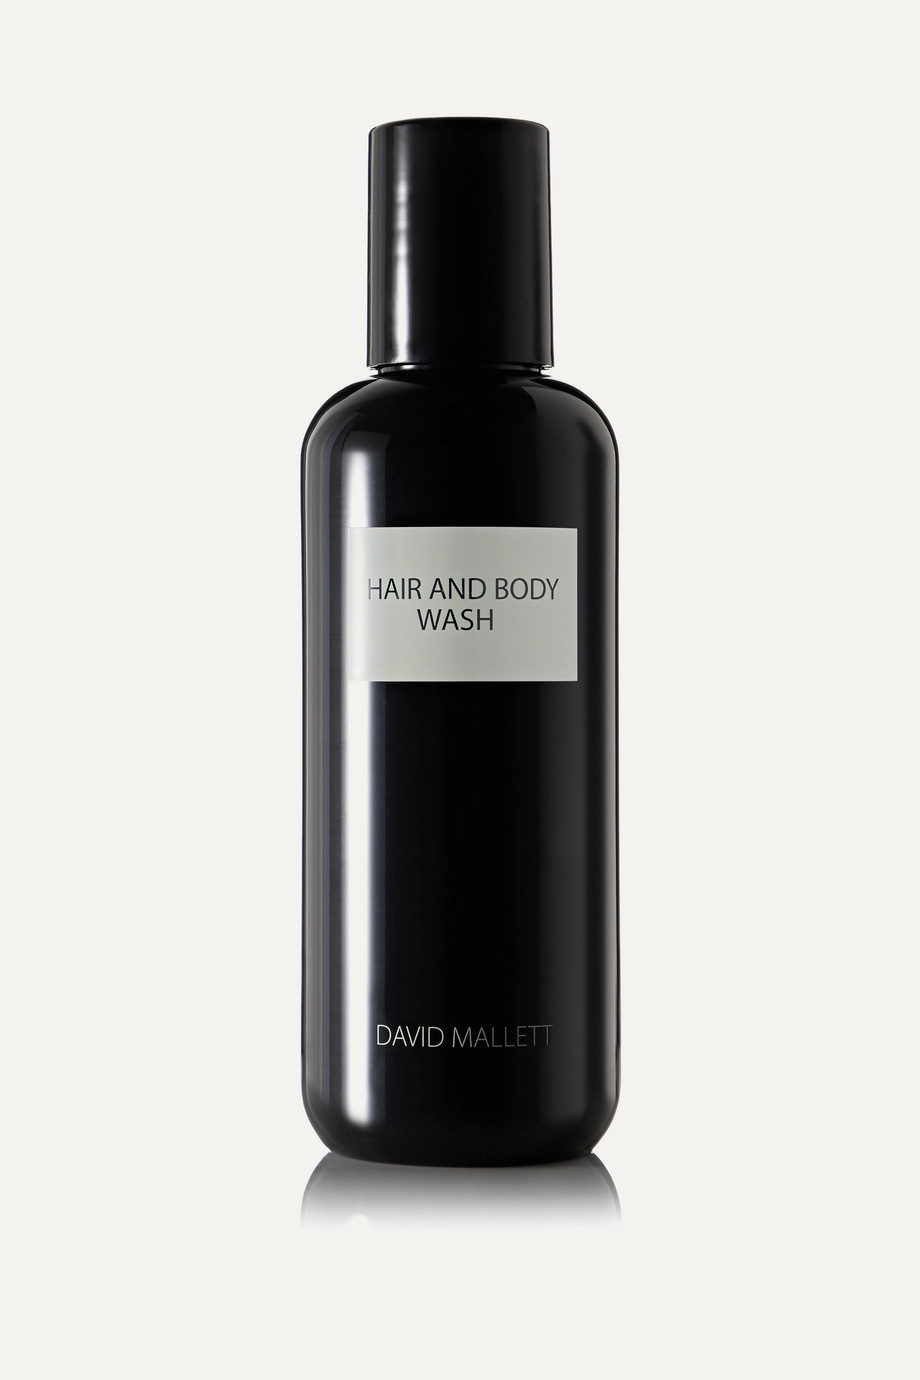 DAVID MALLETT Hair & Body Wash, 250ml